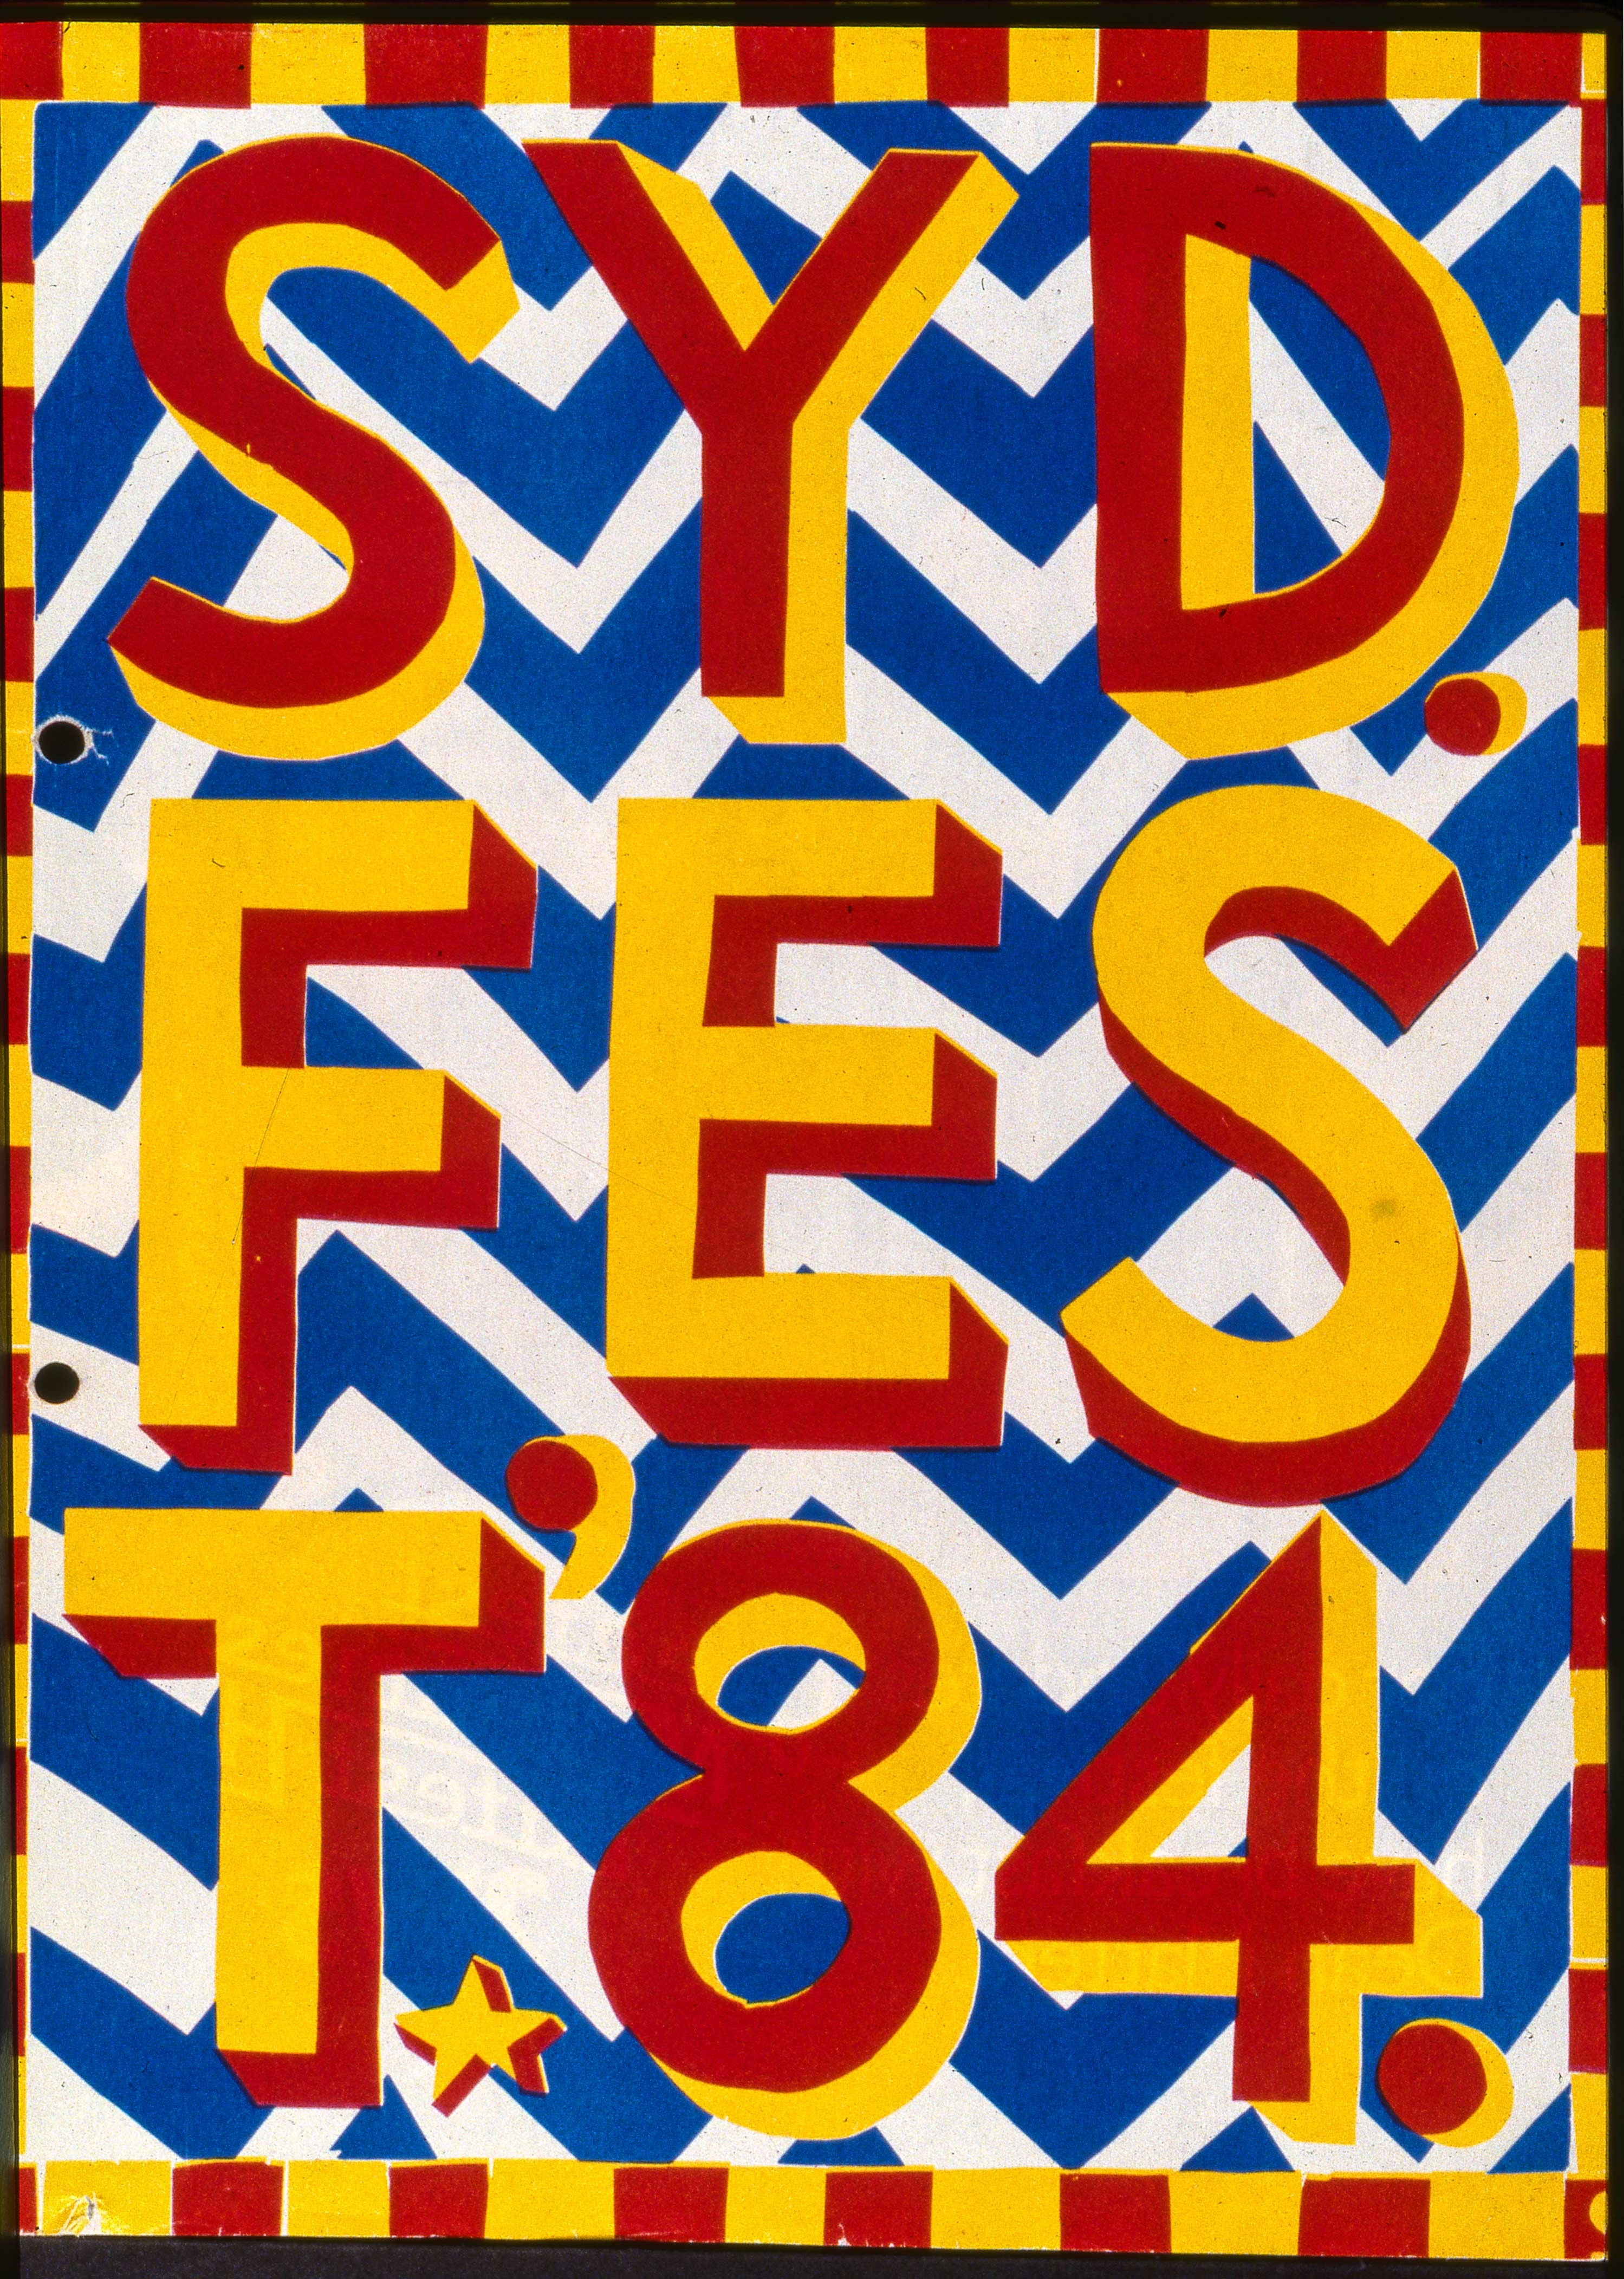 Sydney Festival 1984. City of Sydney Archives.